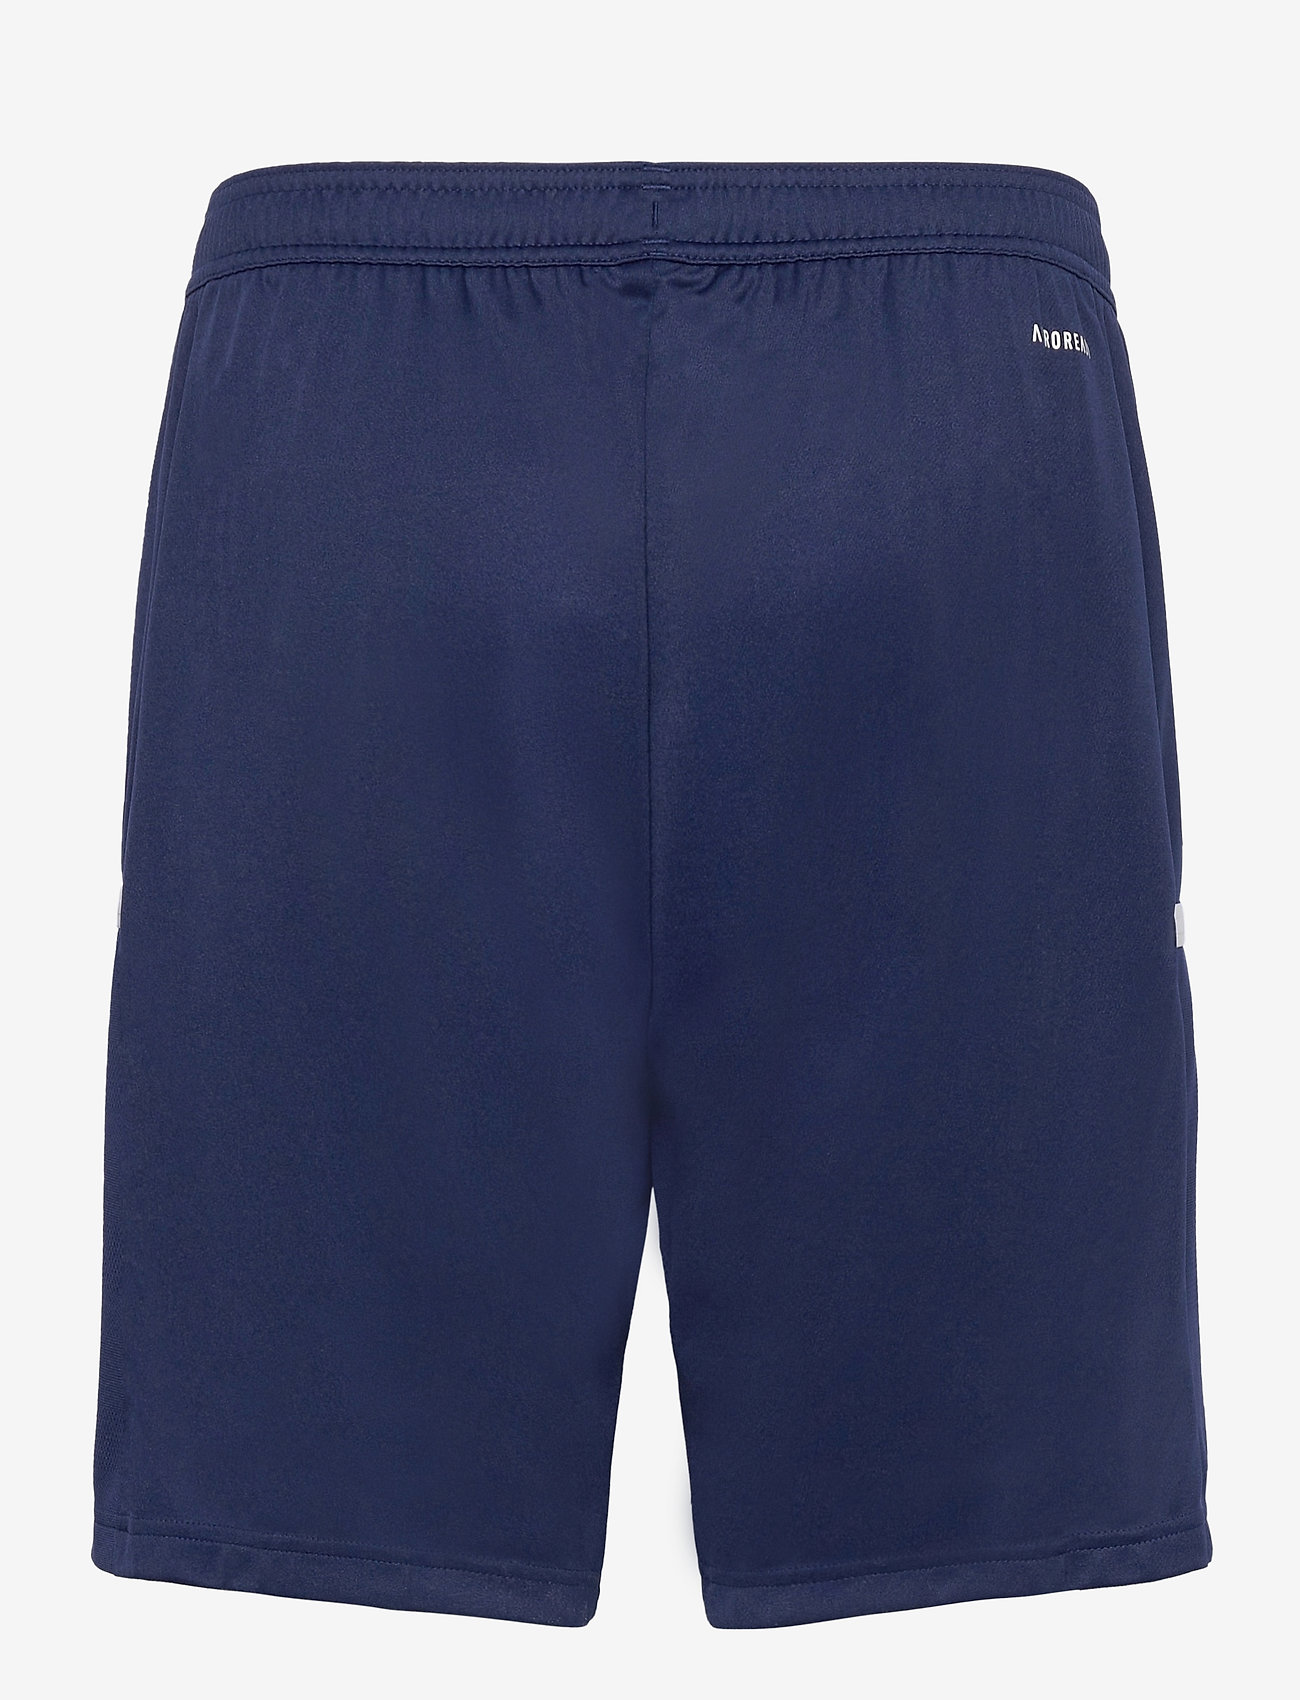 adidas Performance - Team 19 Shorts - treningsshorts - navblu/white - 1